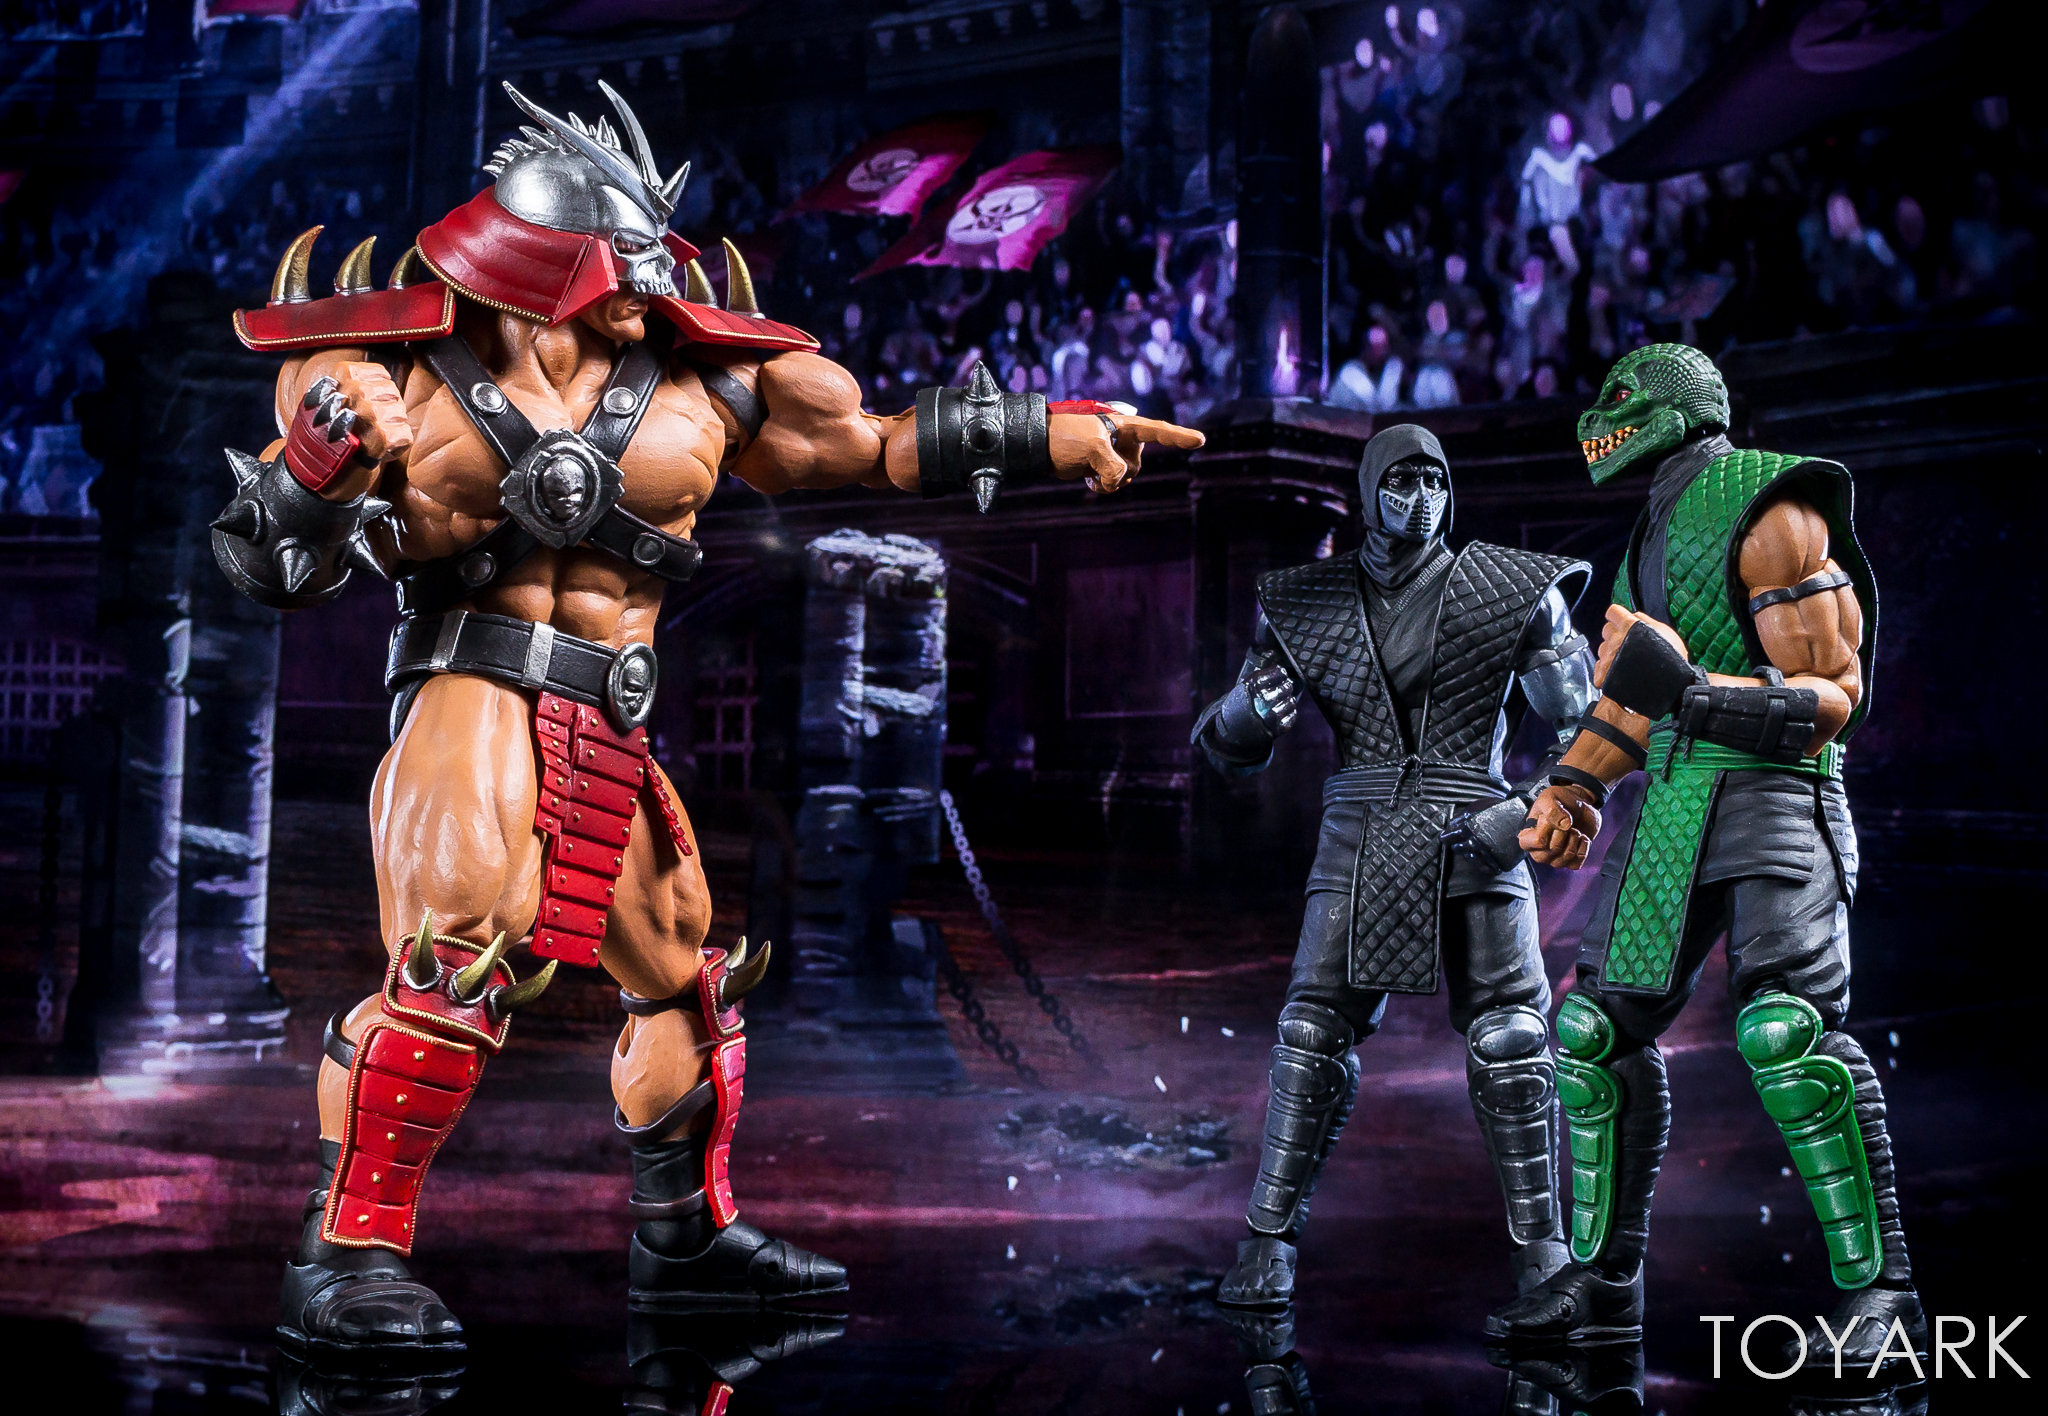 https://news.toyark.com/wp-content/uploads/sites/4/2018/06/Storm-Mortal-Kombat-Shao-Kahn-Figure-044.jpg